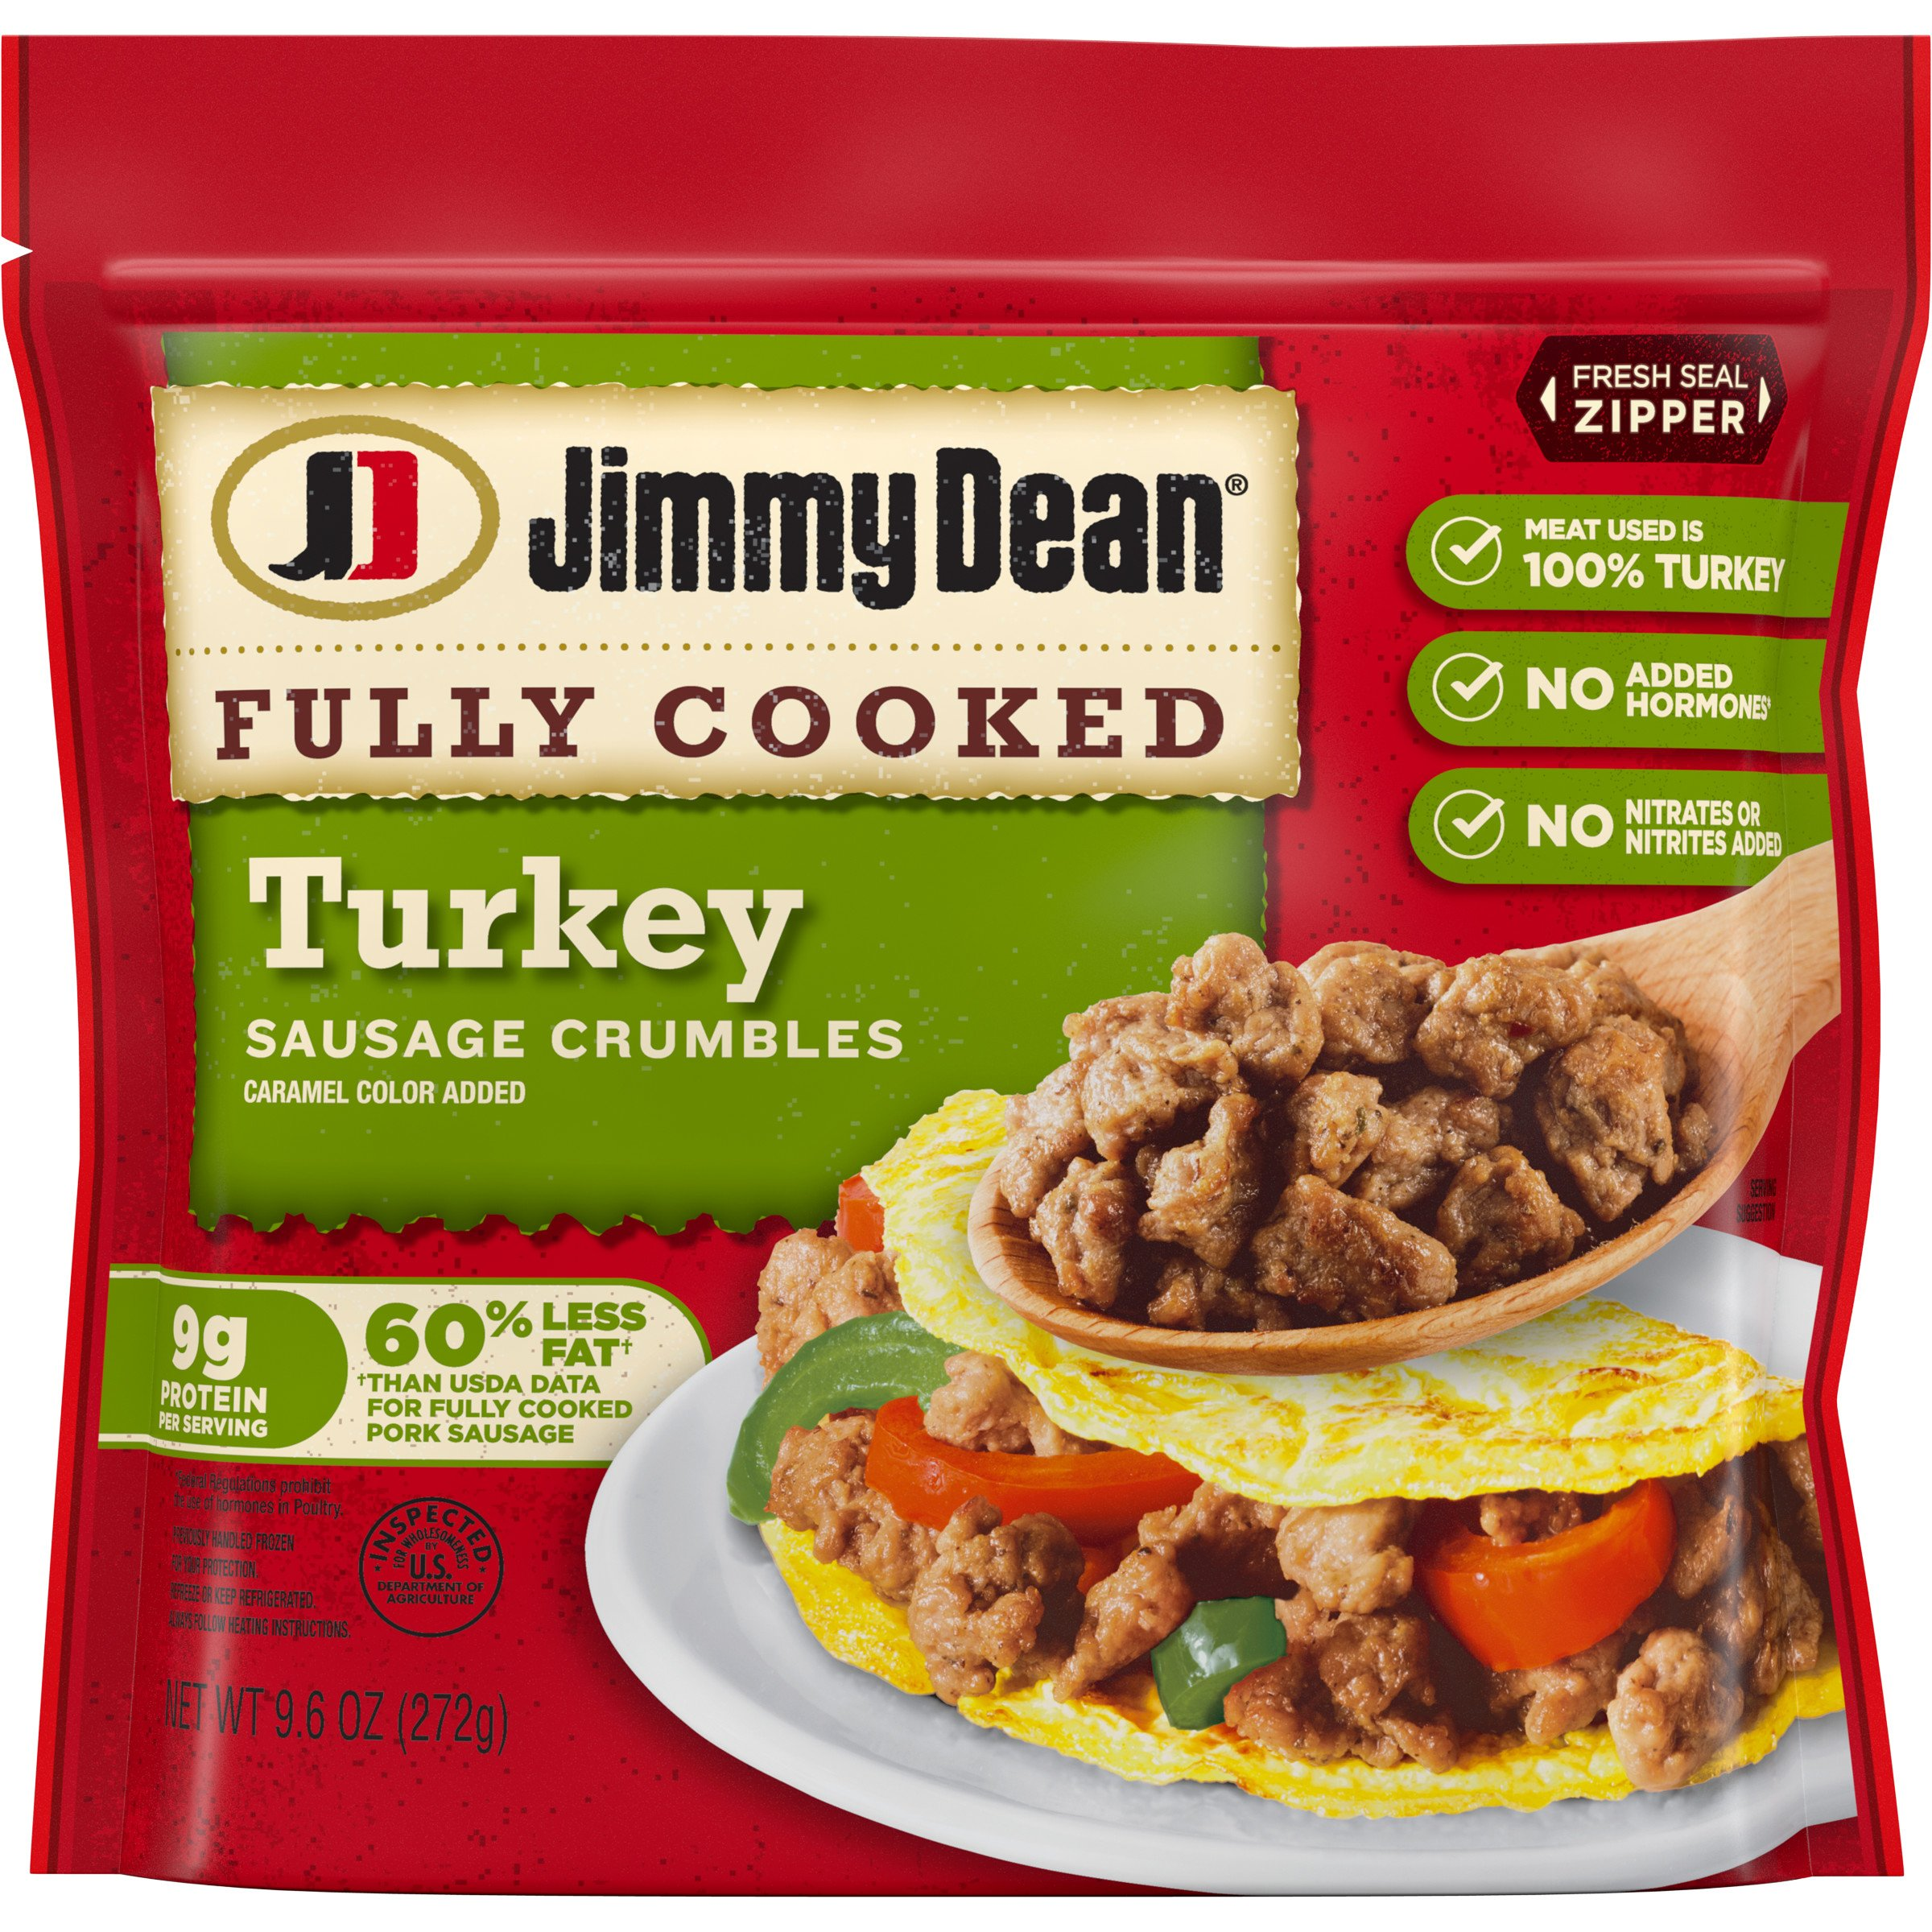 Jimmy Dean Fully Cooked Turkey Sausage Crumbles ‑ Shop Sausage at H‑E‑B